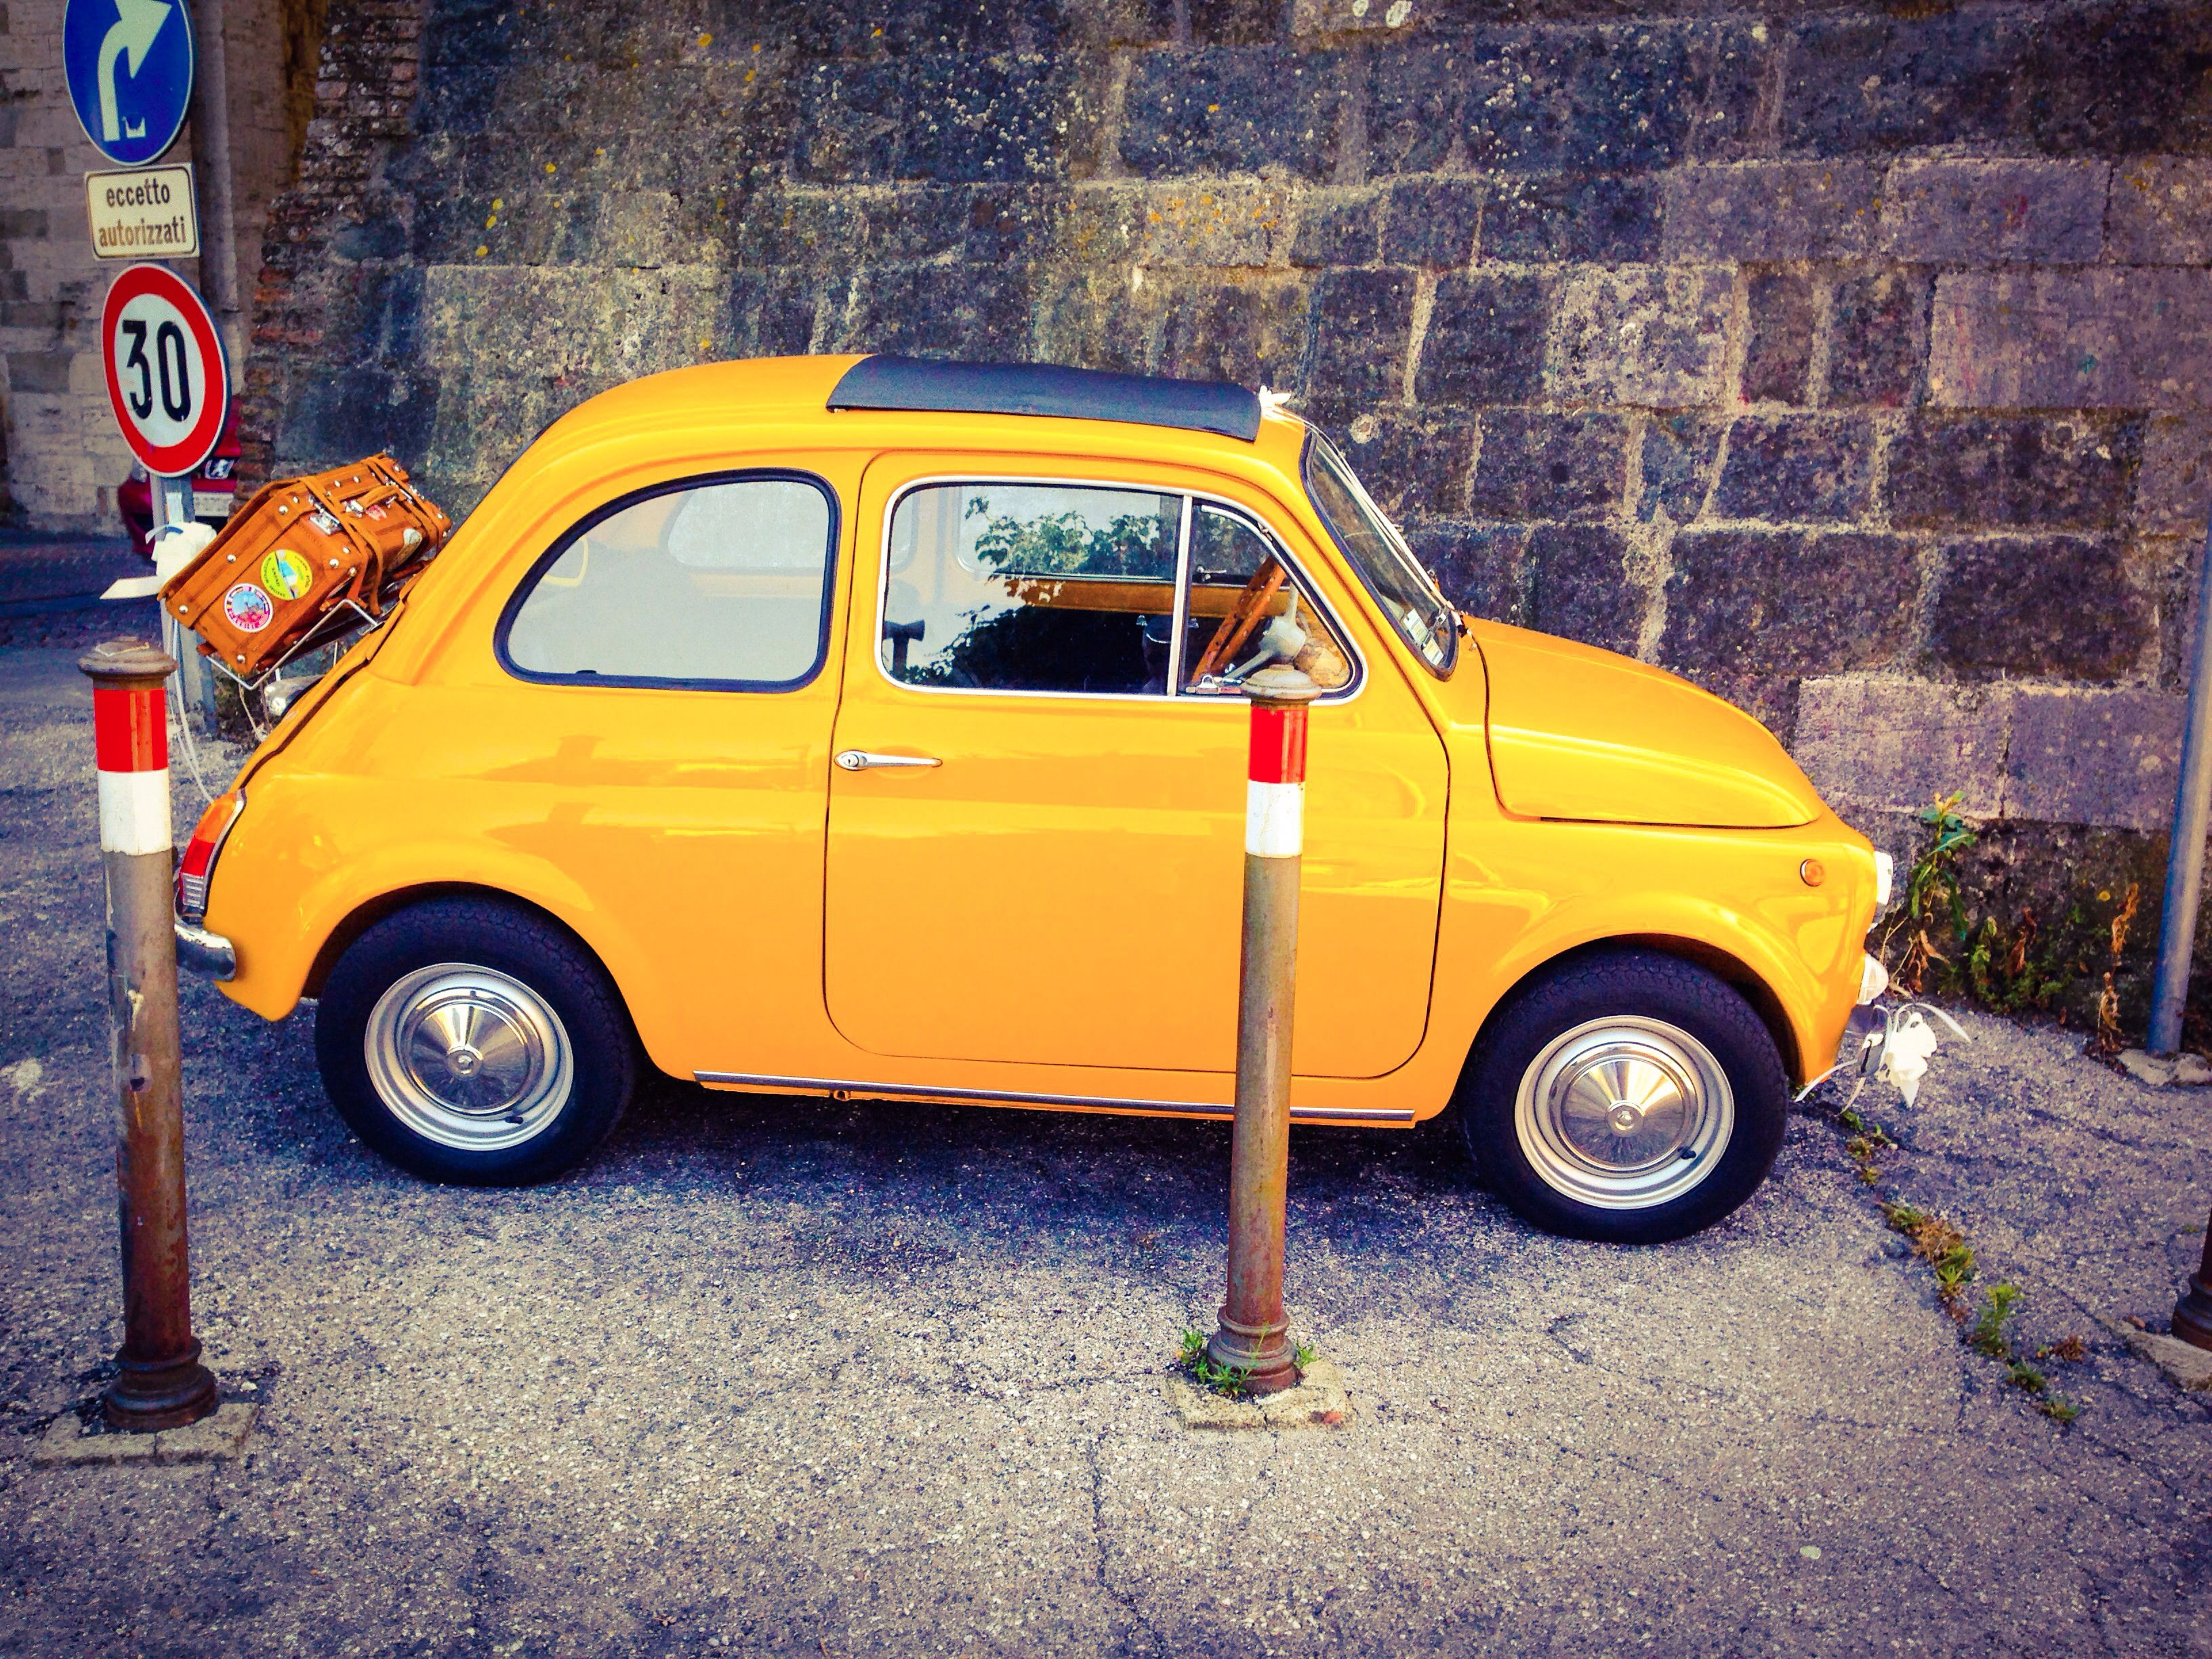 Adorable yellow Fiat 500... pretty sure this is my dream car :)